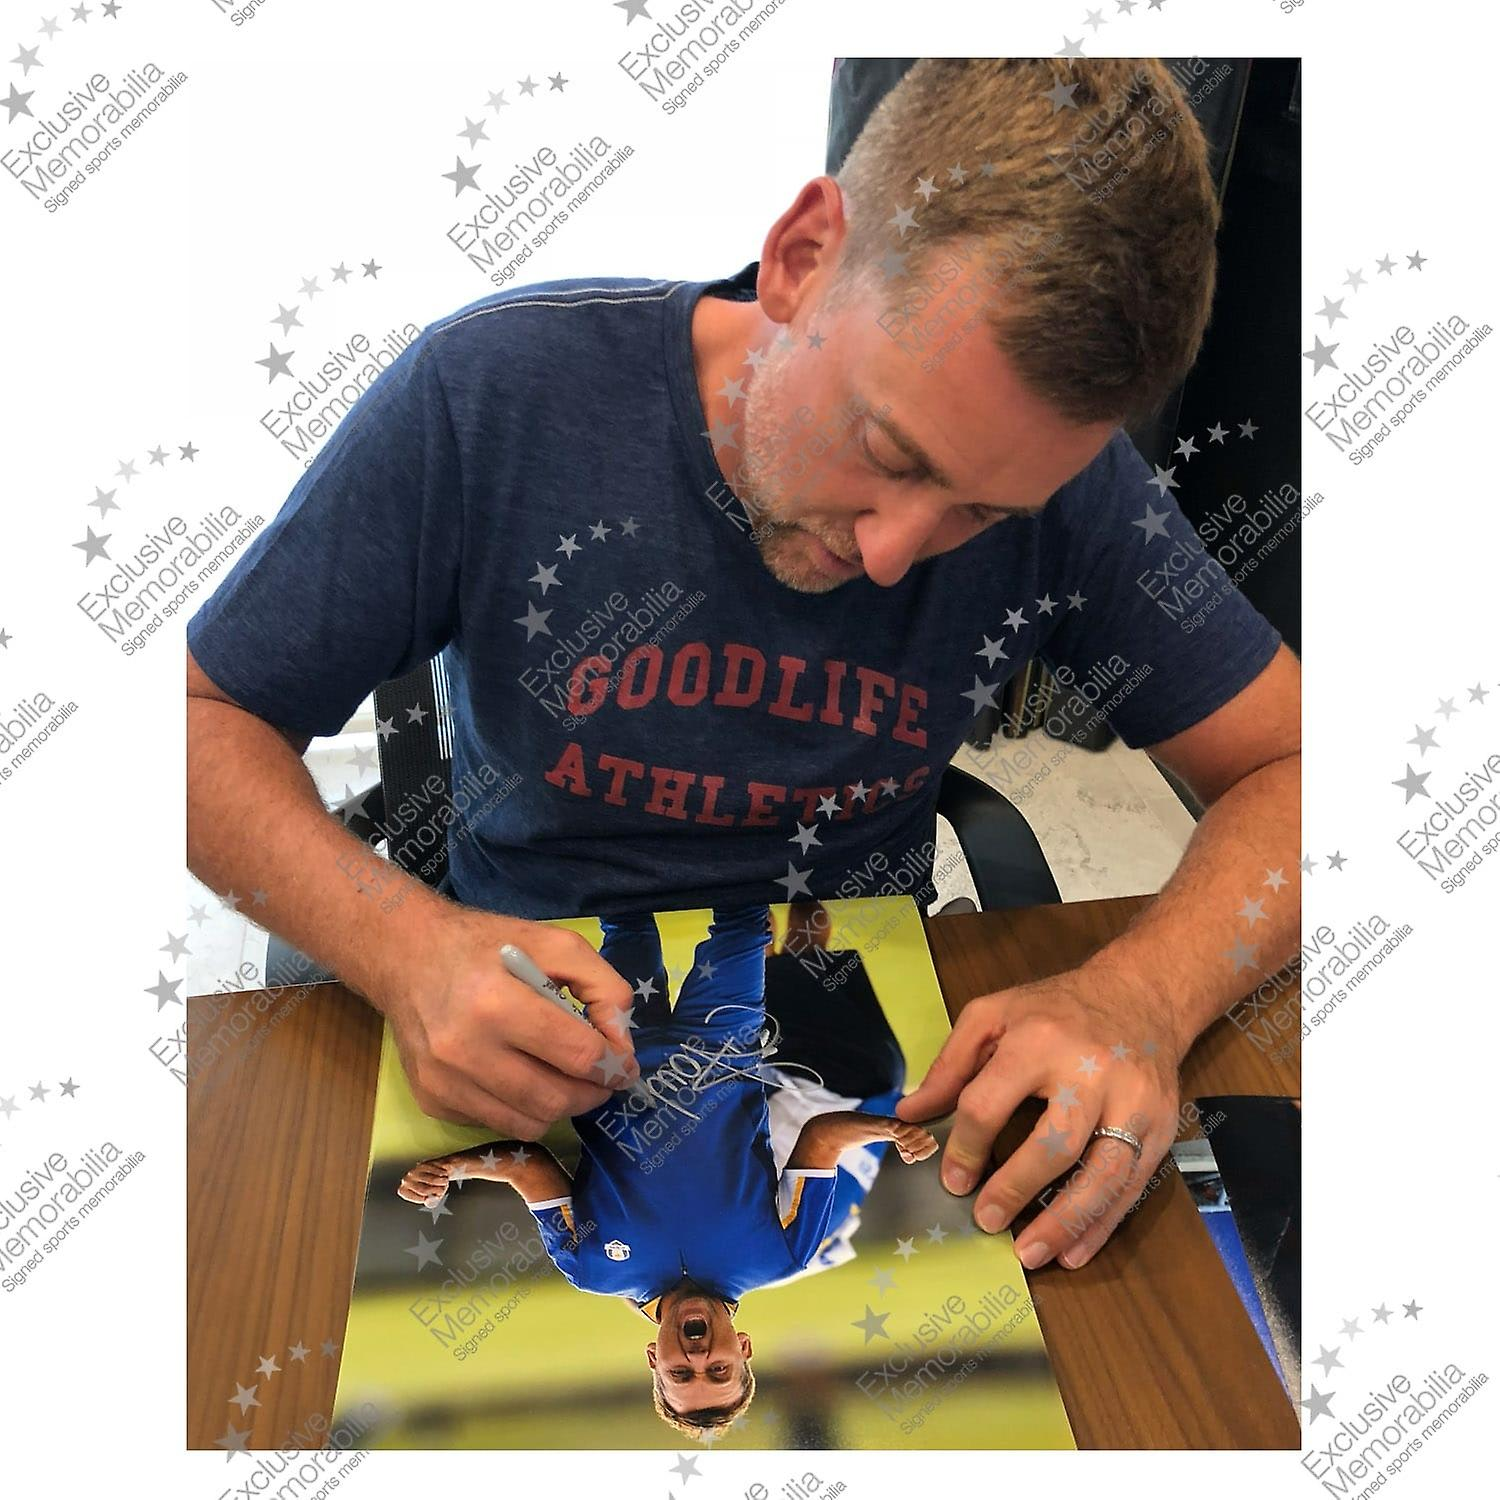 Ian Poulter Signed Golf Photo: The Postman. Framed